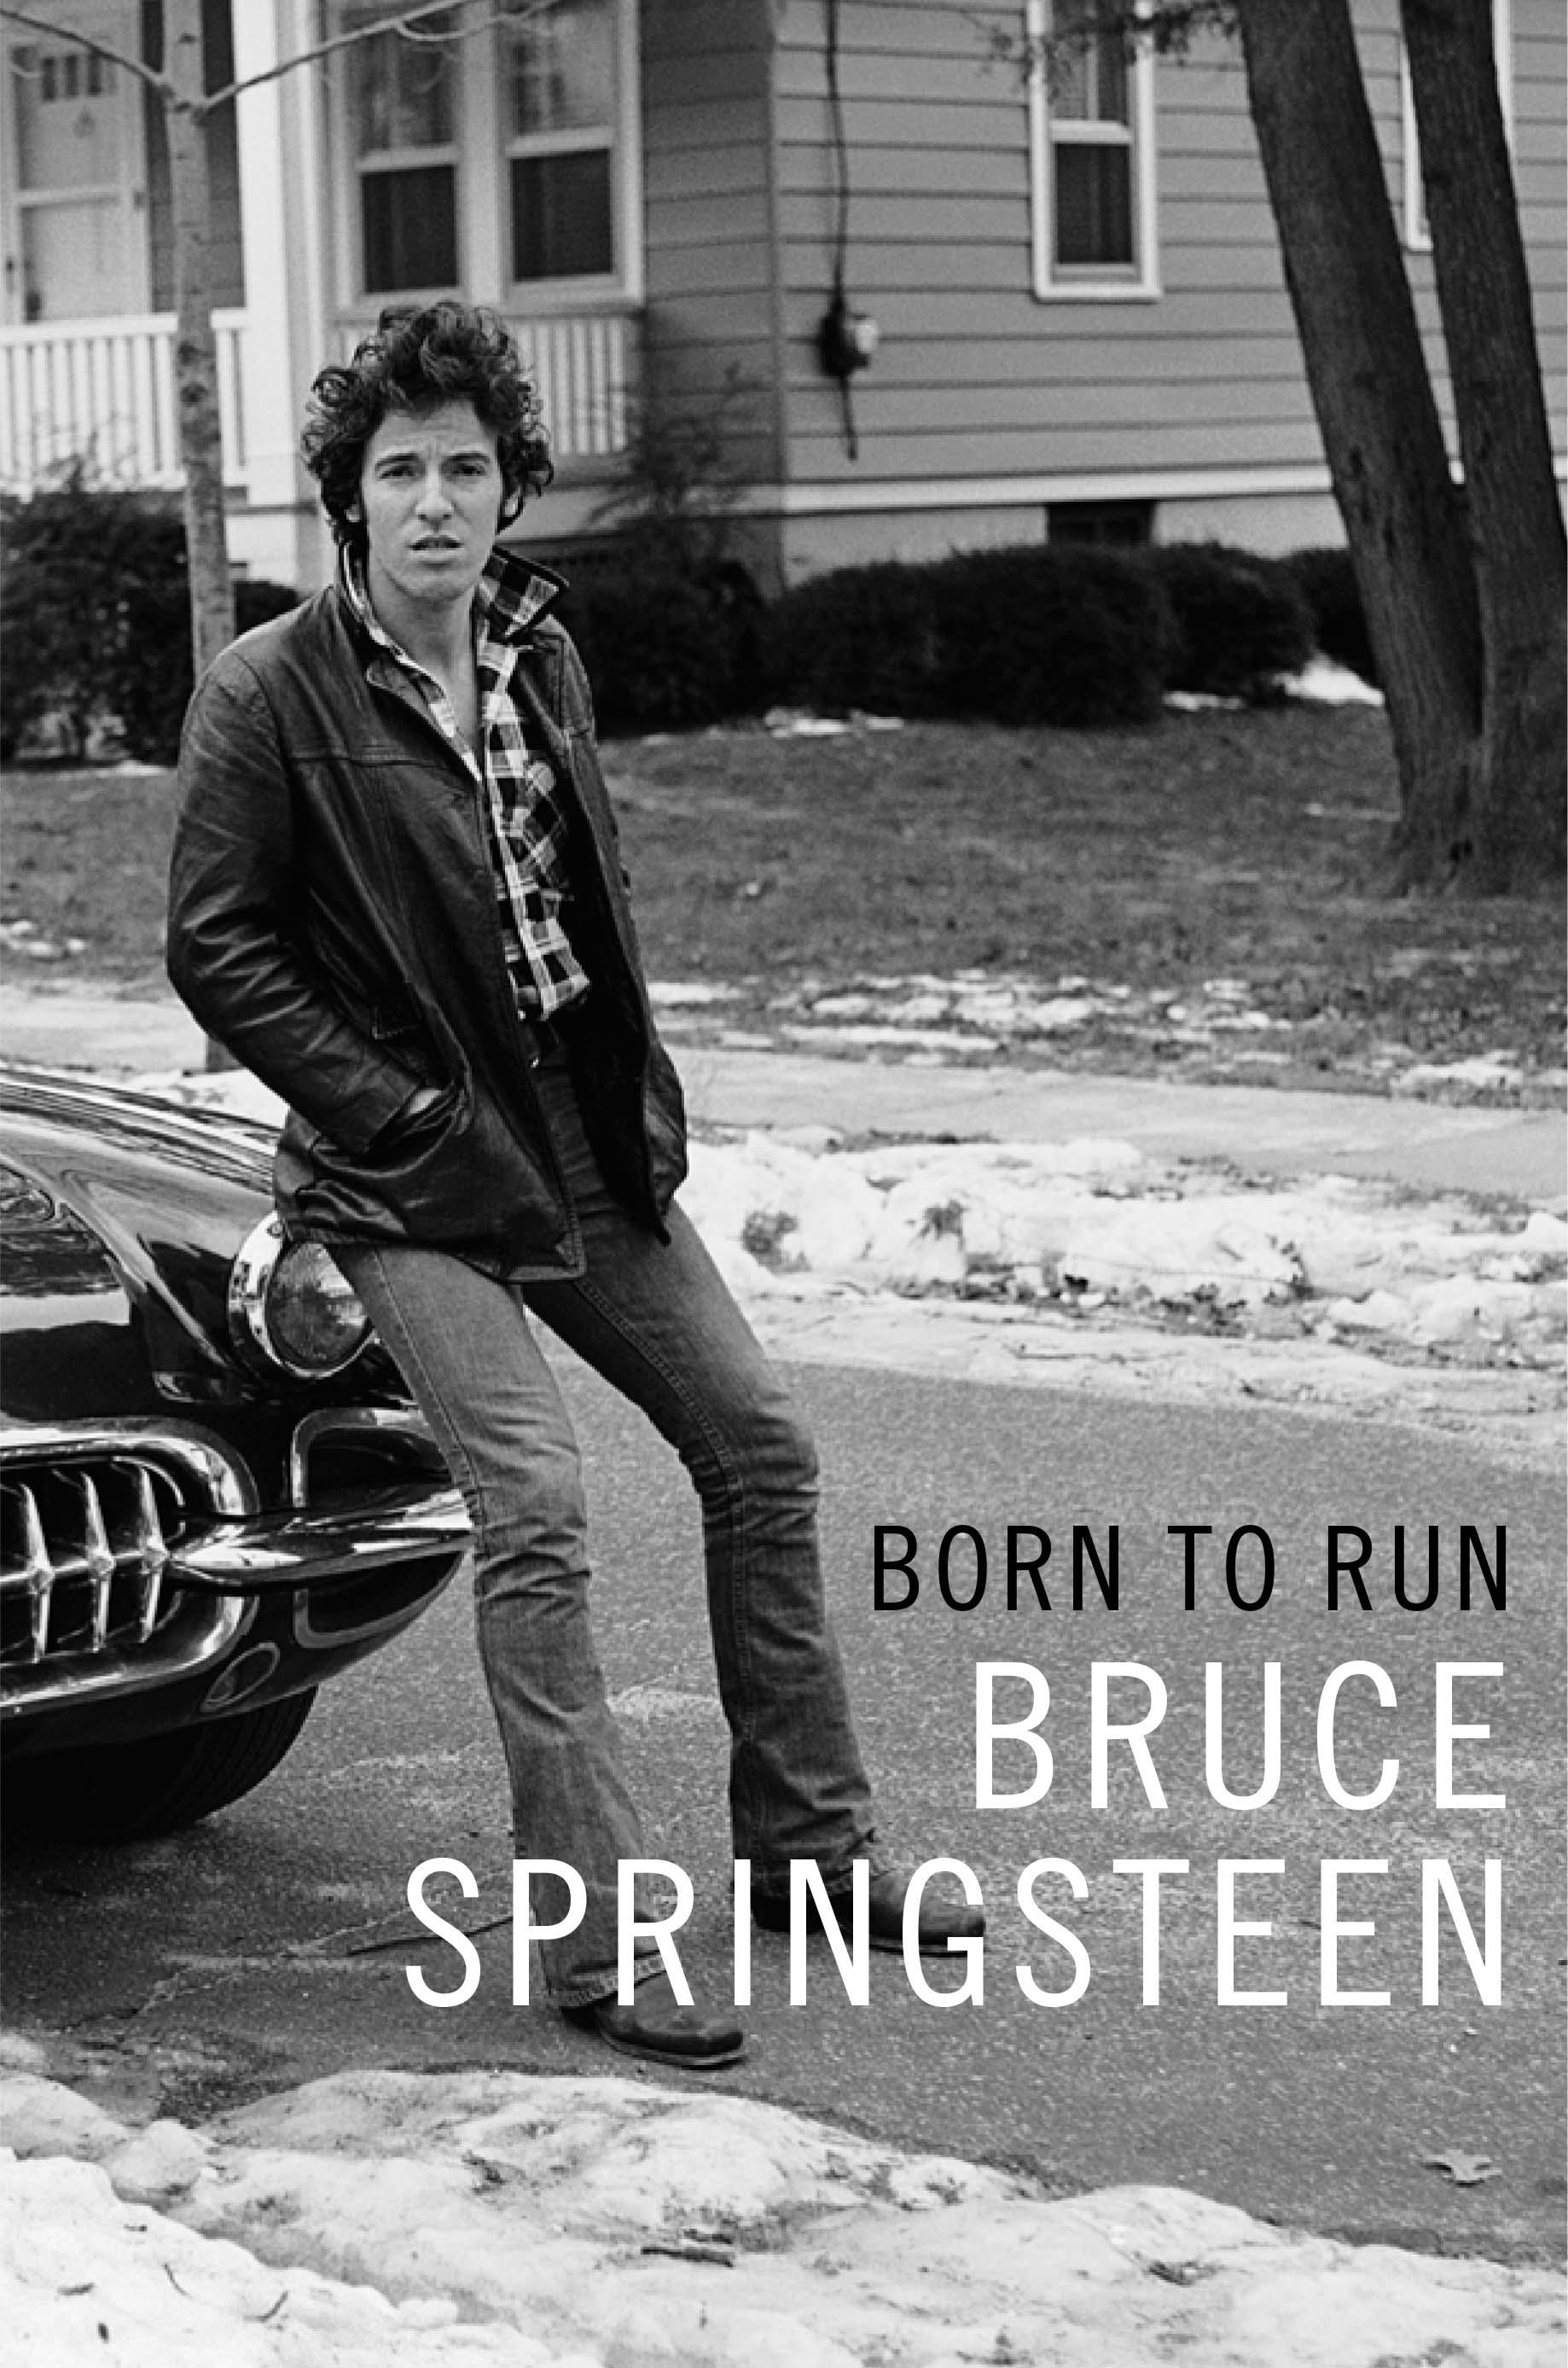 Bruce Springsteen wrote an autobiography about his rise to fame coming out this year